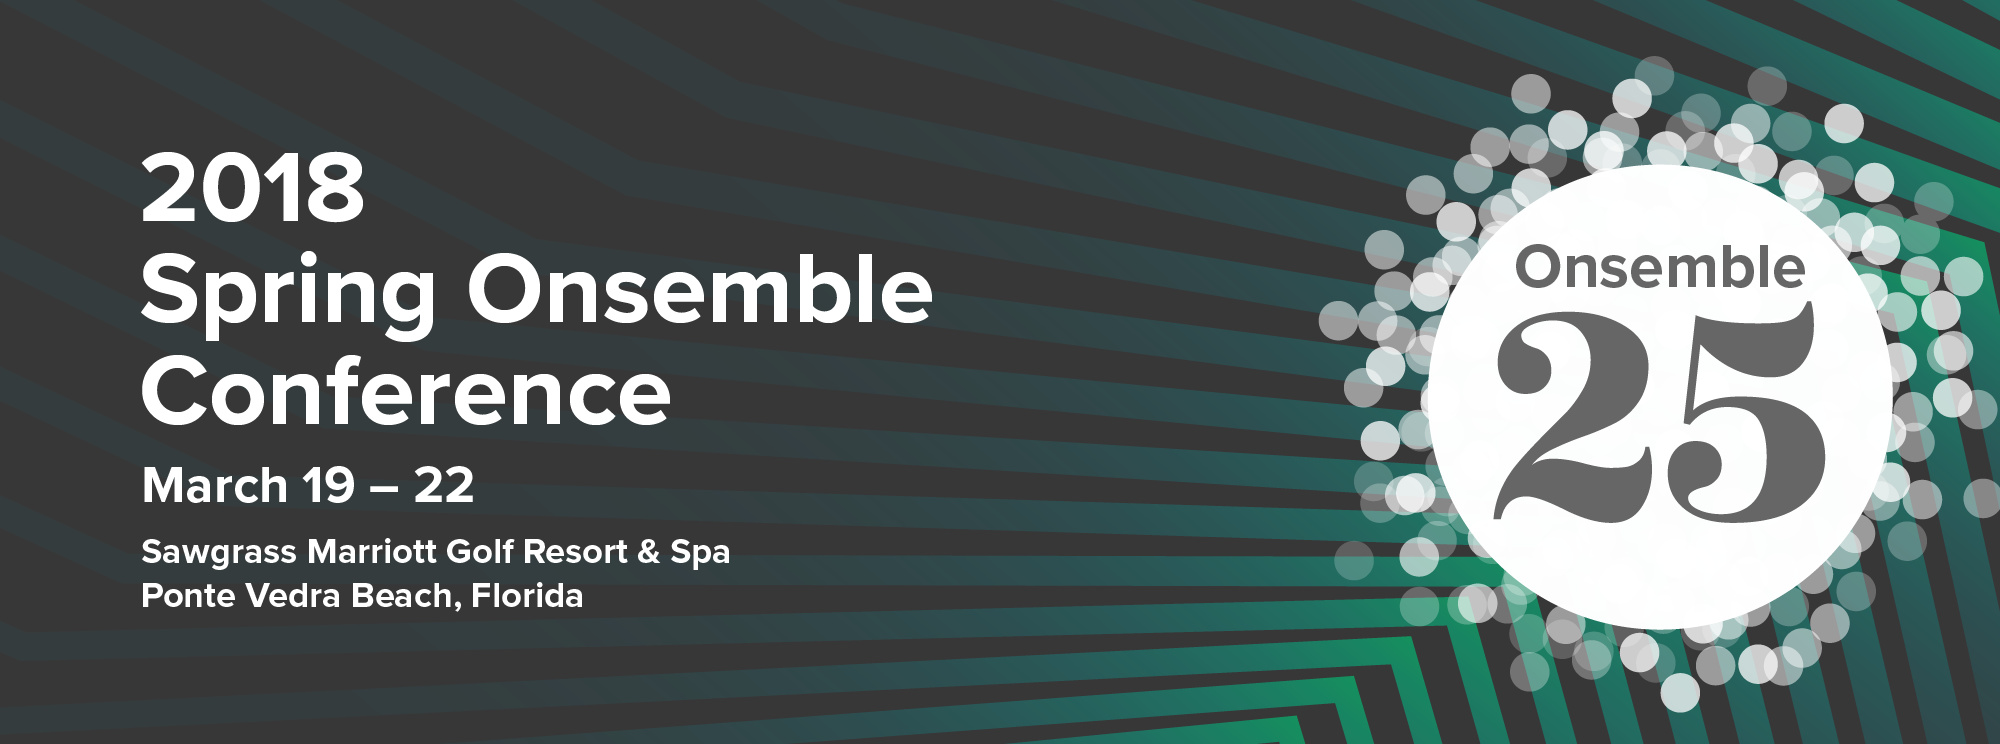 2018 Spring Onsemble Conference